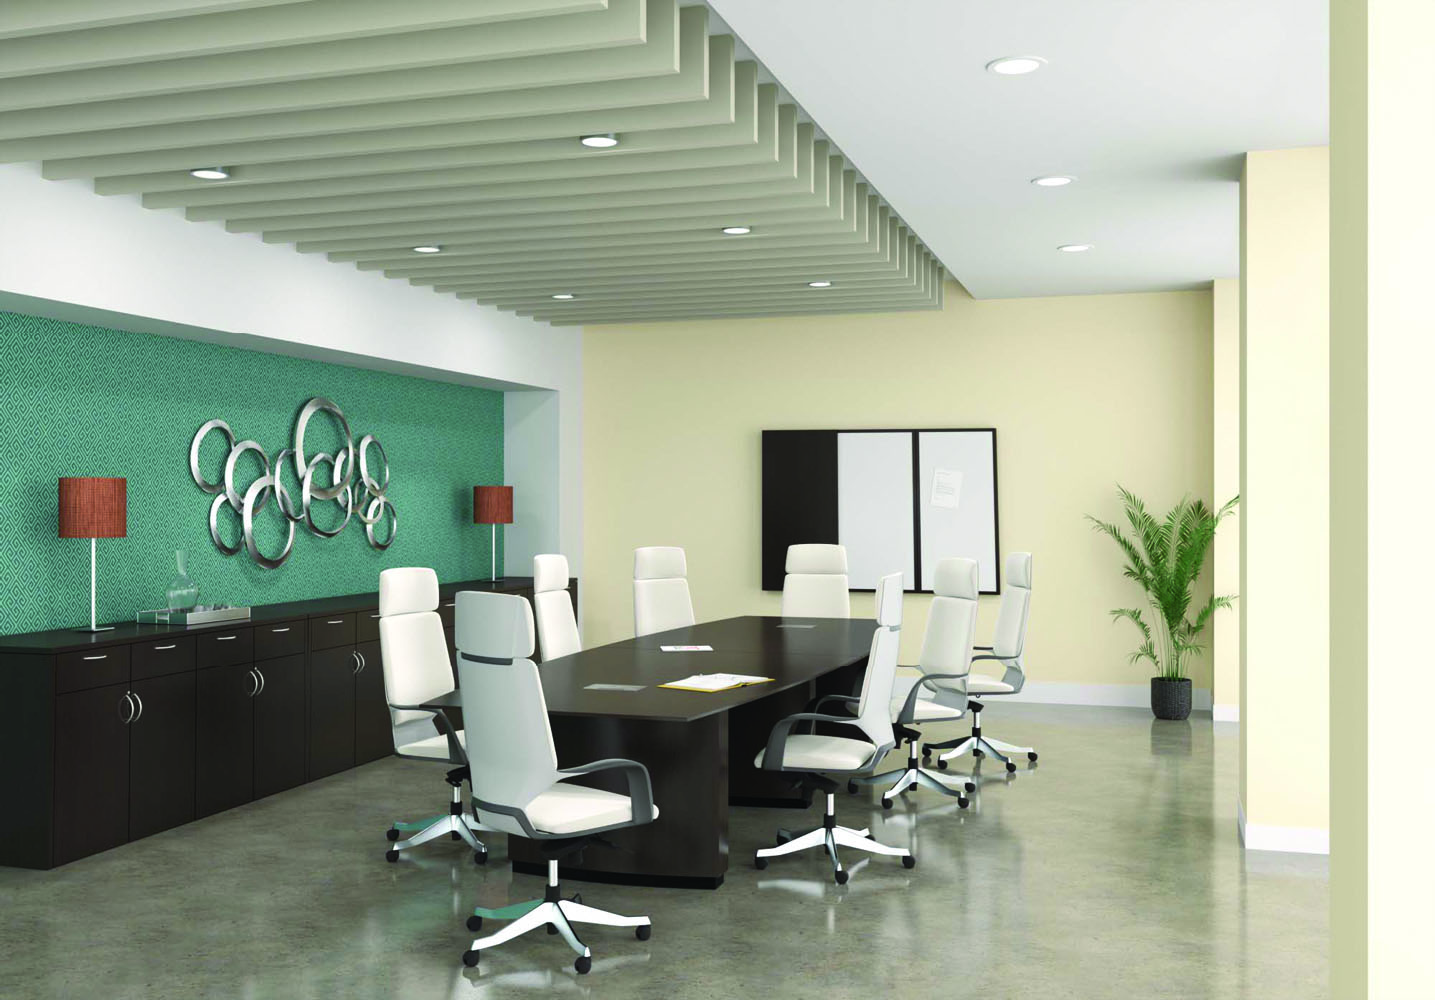 Conference Table And Chairs - Collaboration Spaces Office Furniture Sets